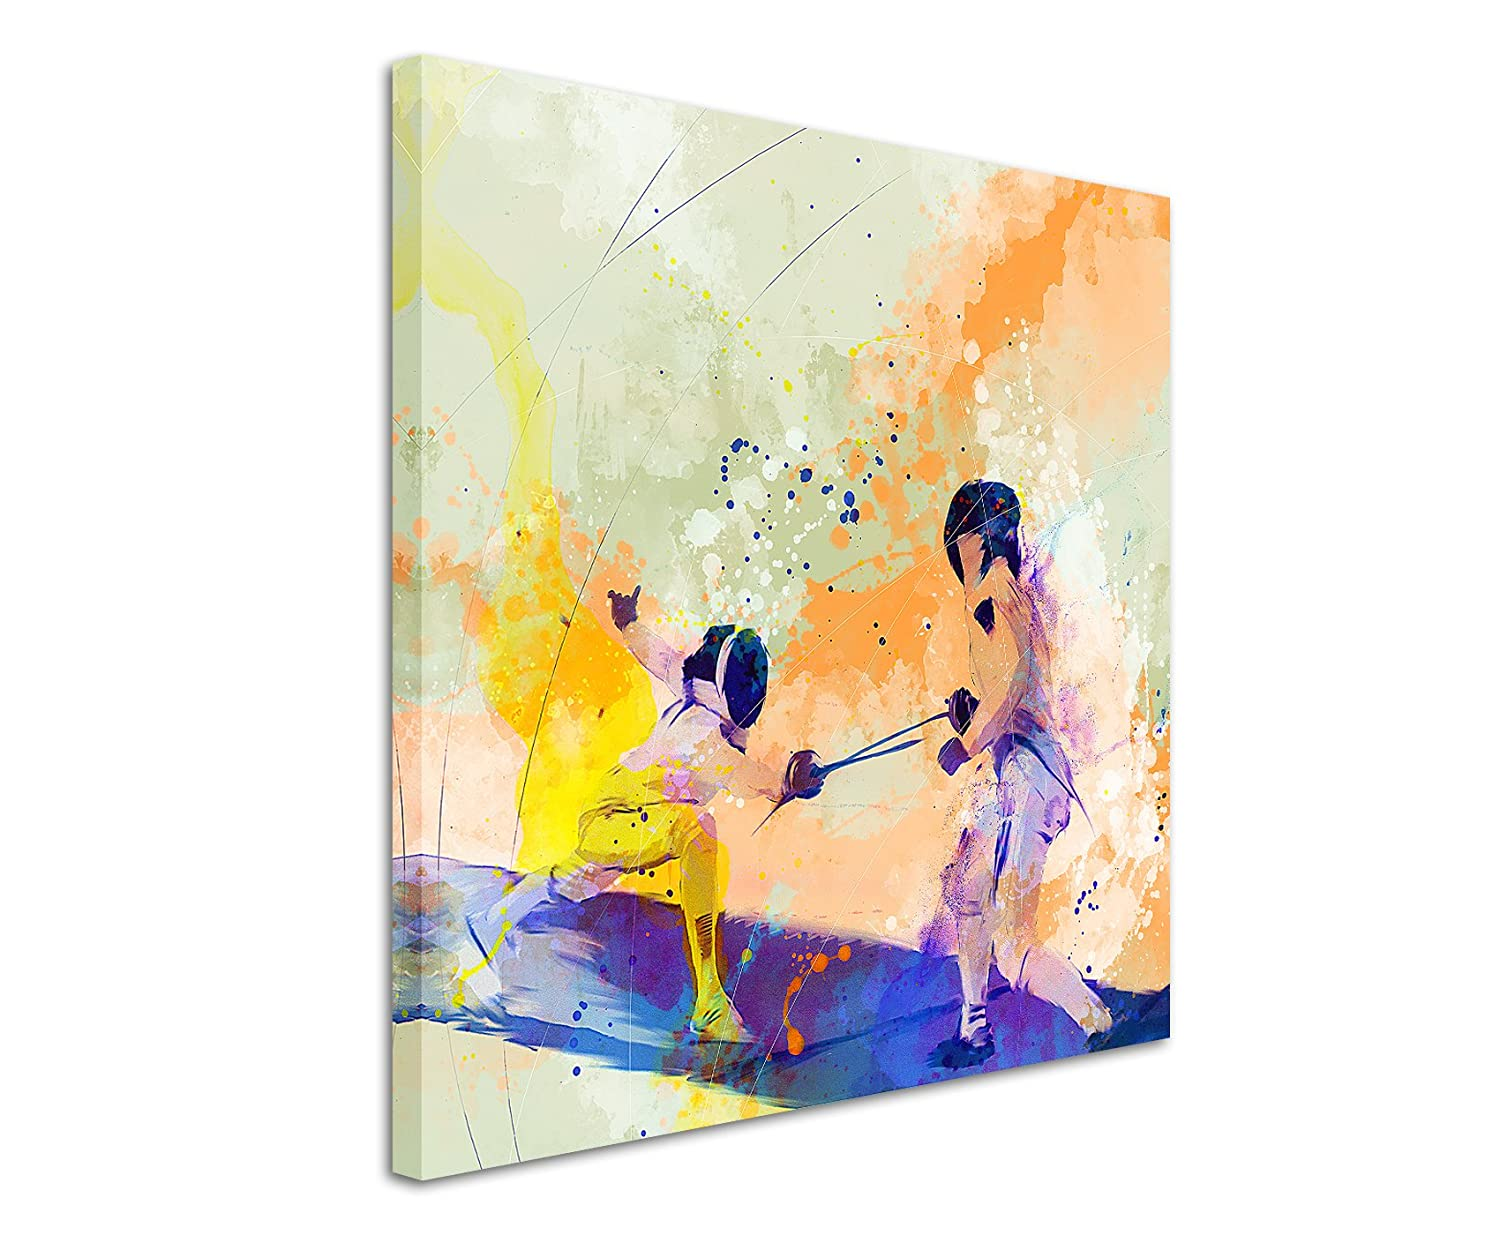 Fencing Sport Picture Wall II 60/x 60/cm Watercolour Art Colours by Paul Sinus